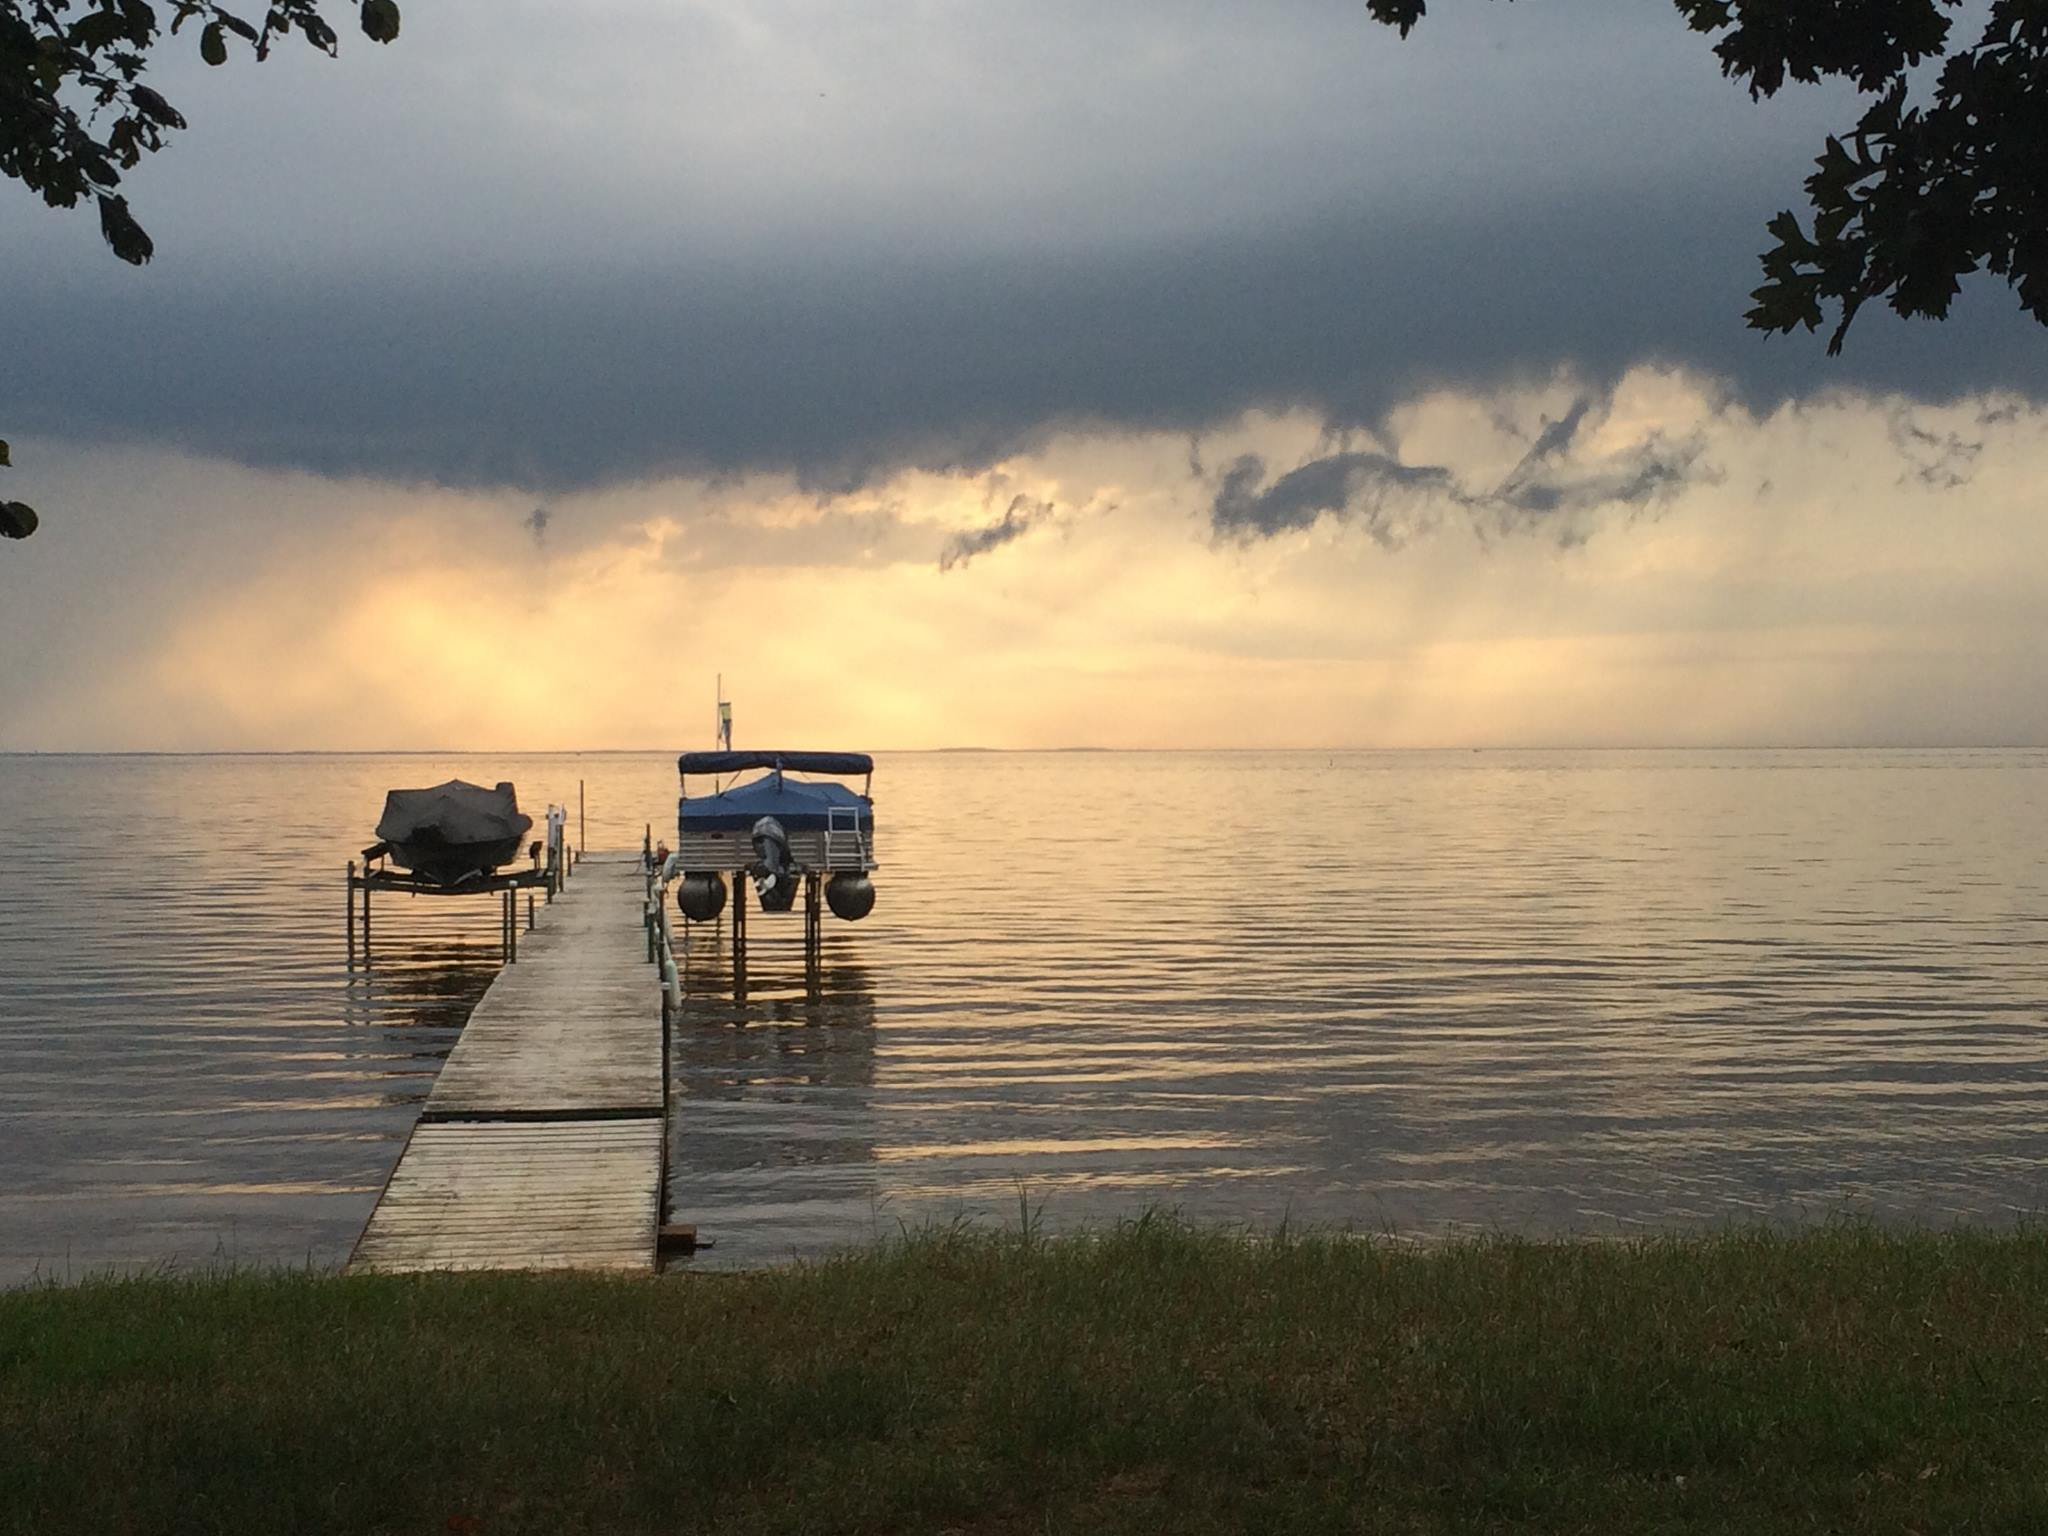 Dnr drops mille lacs bass limit from 4 to 3 in may for Mille lacs lake fishing